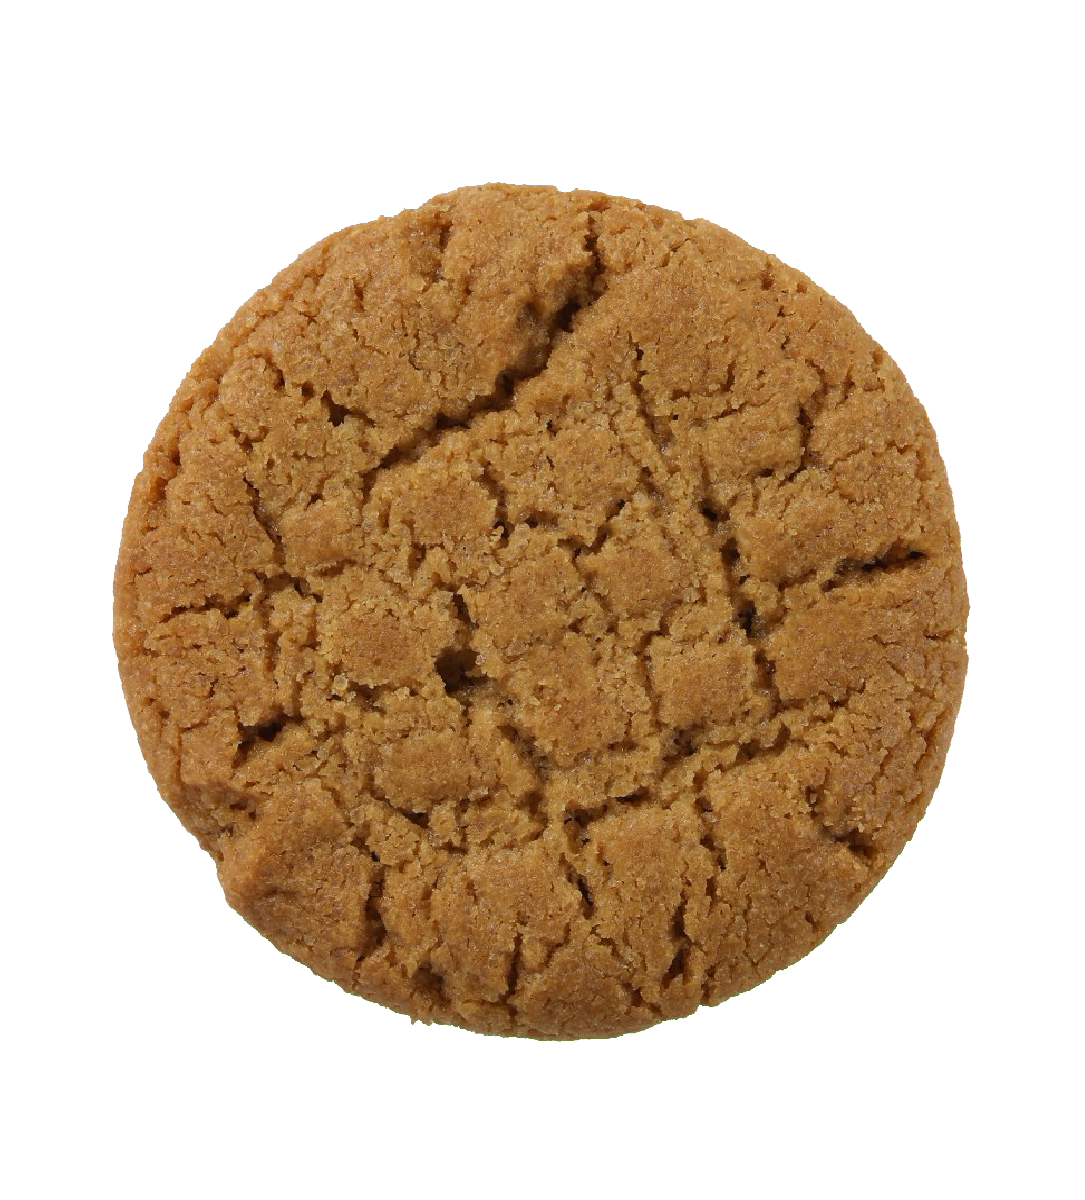 https://livingfood.co/collections/vegan-guilt-free-dessserts/products/peanut-butter-cookies